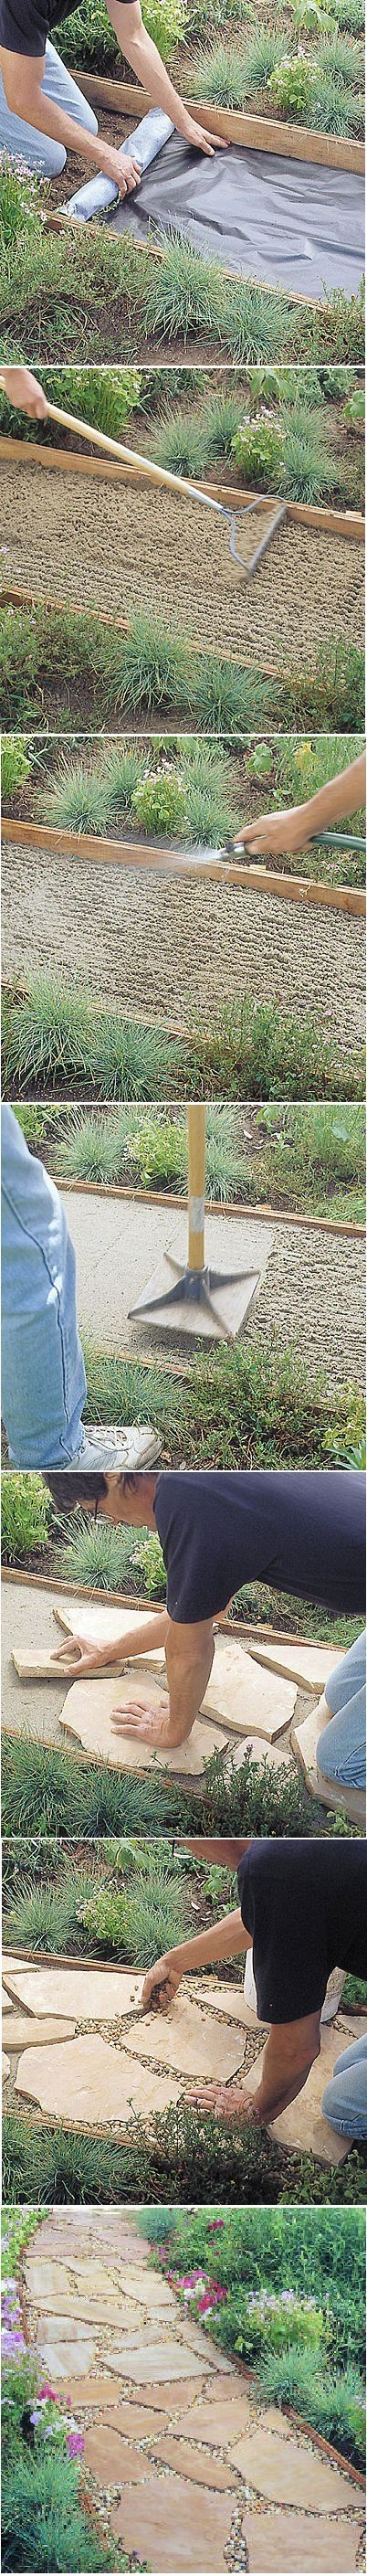 DIY Flagstone Path Tutorial by tracy.skinner.9